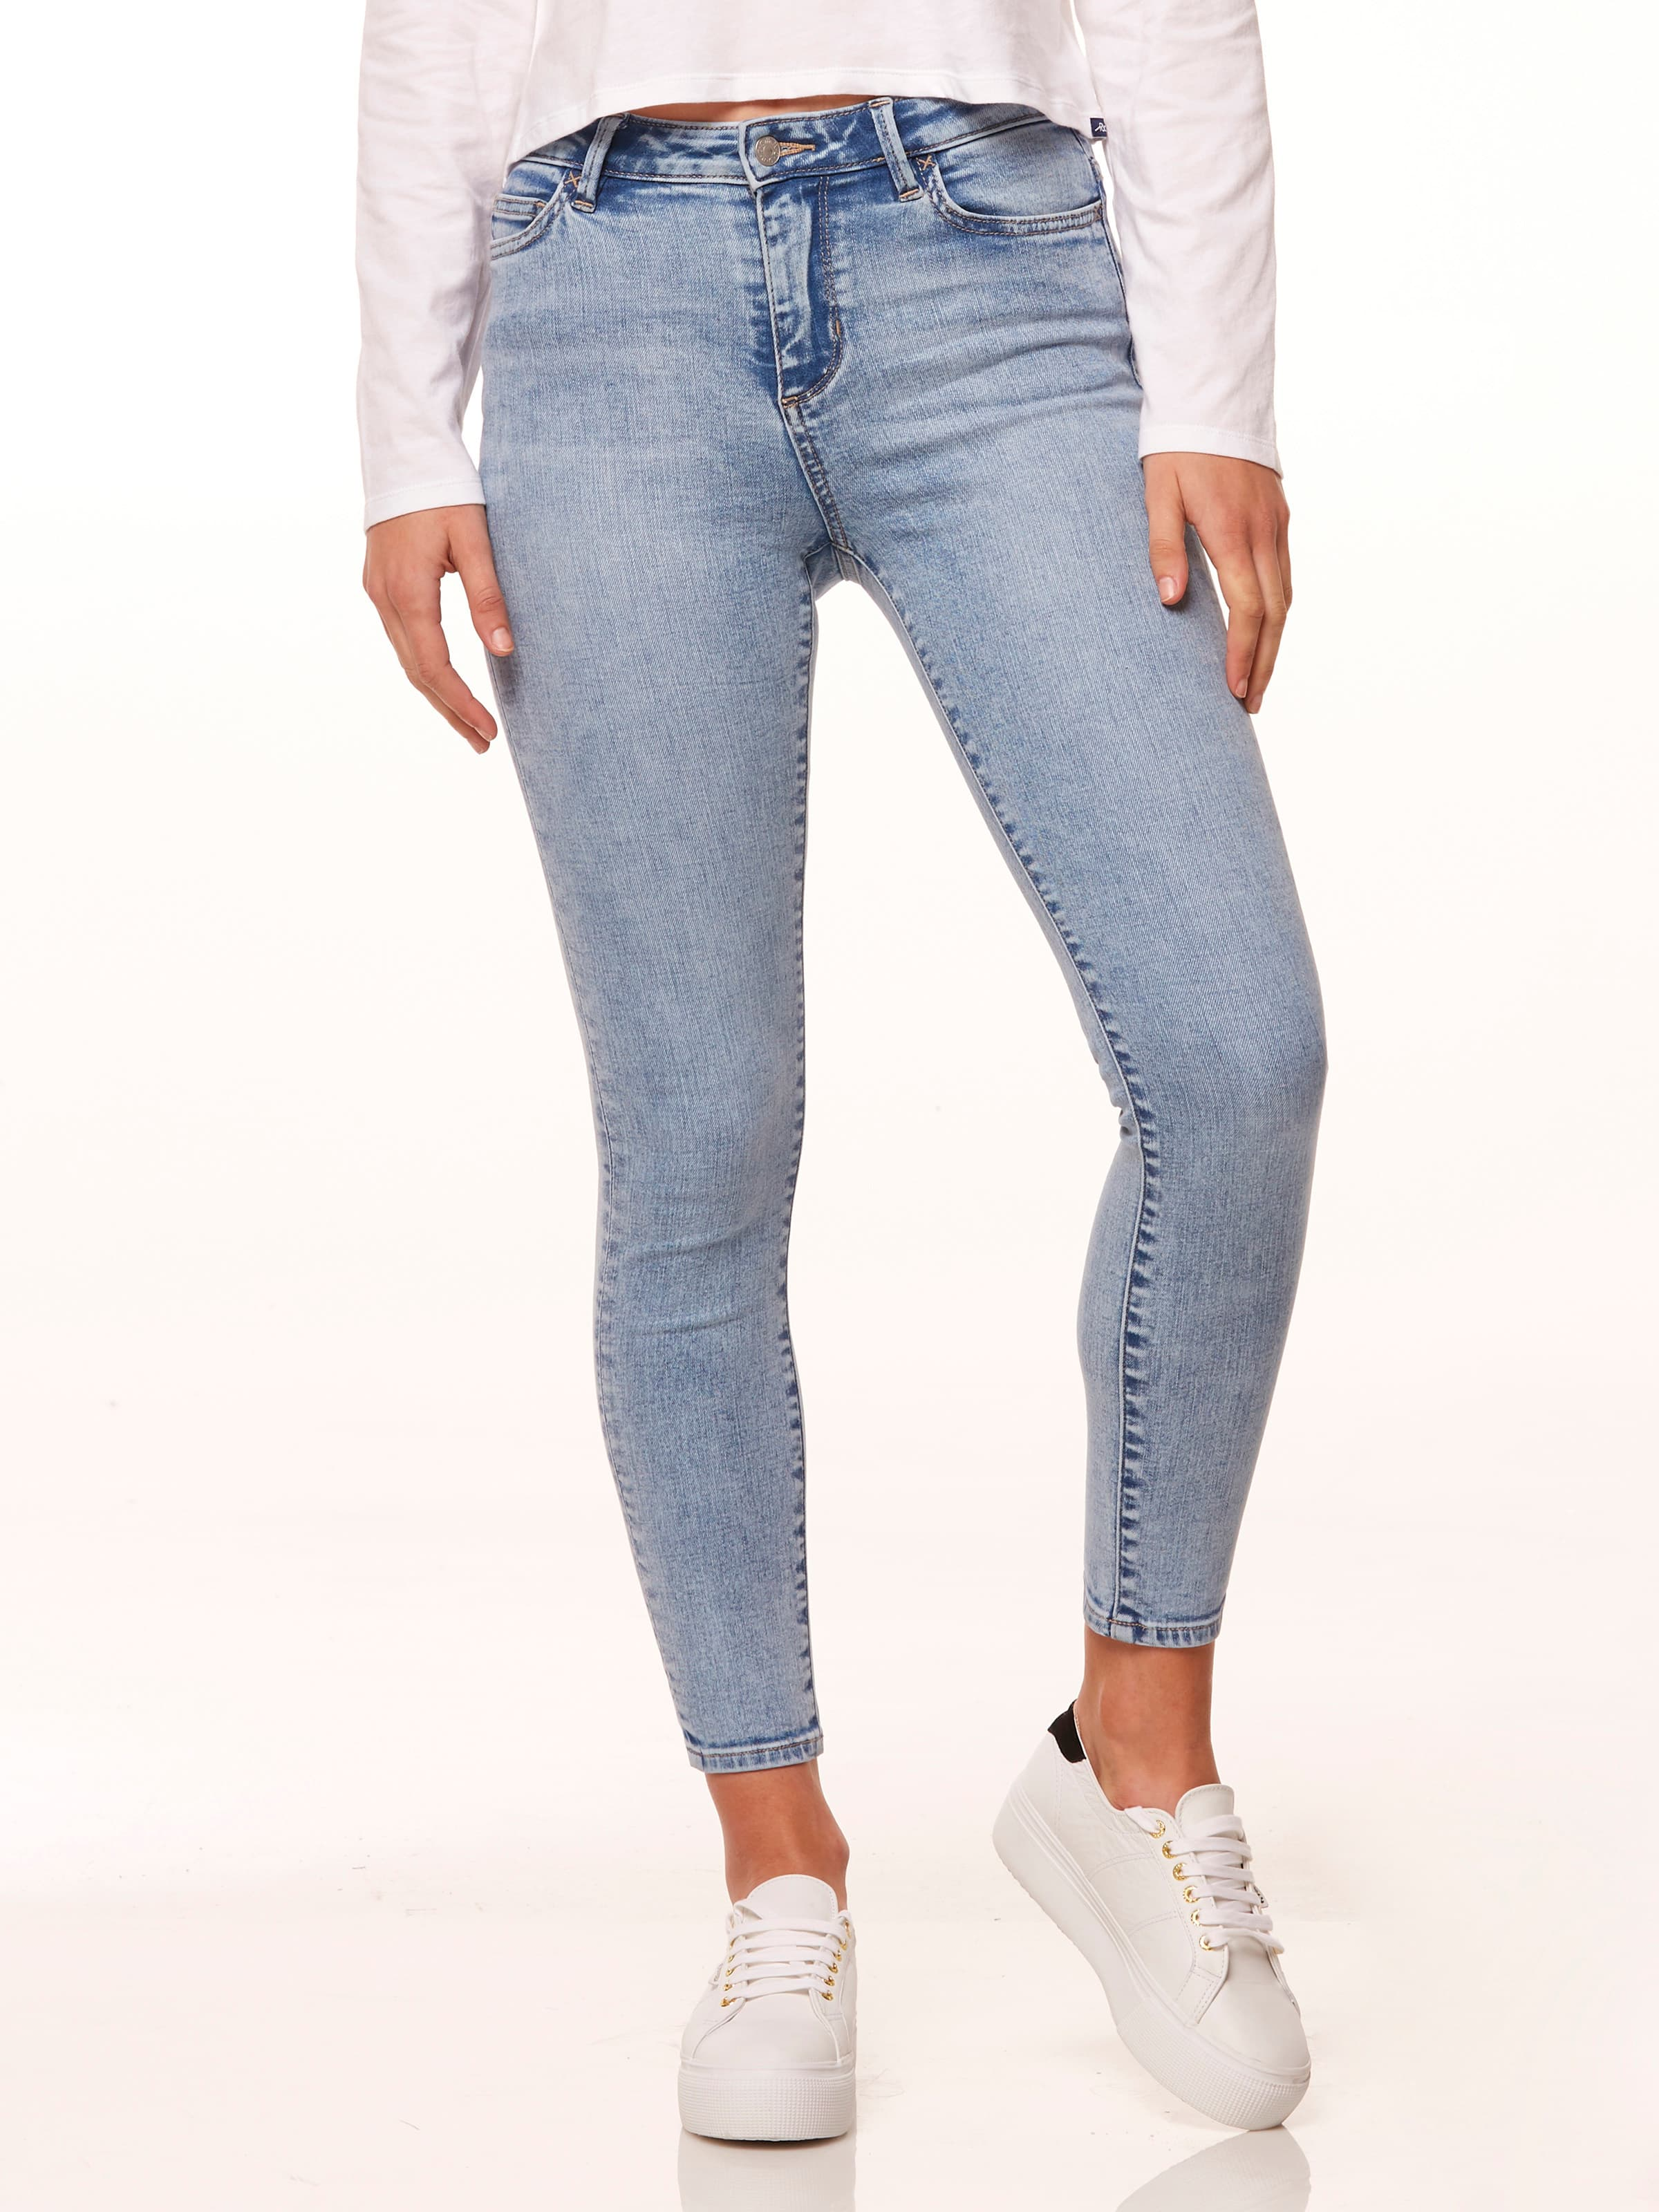 2ba2dc9abb06 BUY Just Jeans Riders By Lee Mid Ankle Skimmer Moonscape Blue ...